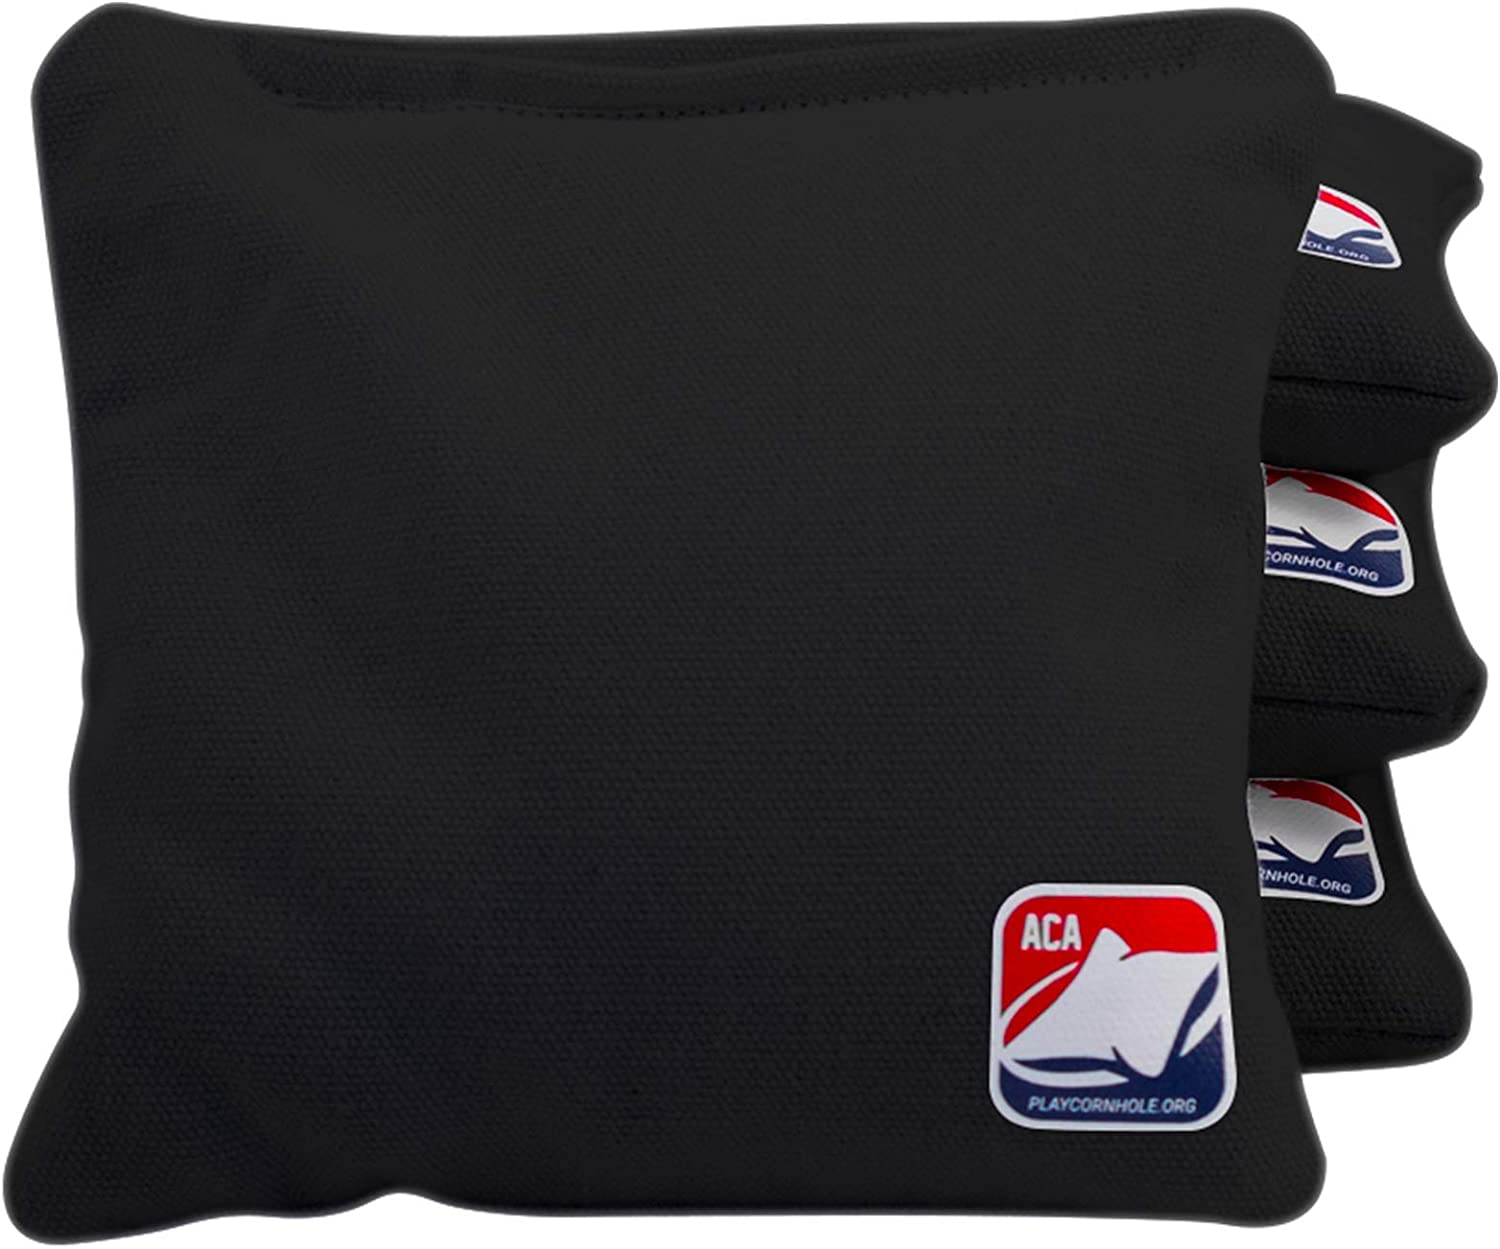 Free FedEx 2nd Day Air Shipping Corn or All Weather Brown and Dark Gray Cornhole Bags ACA /& ACO Certified Made In USA